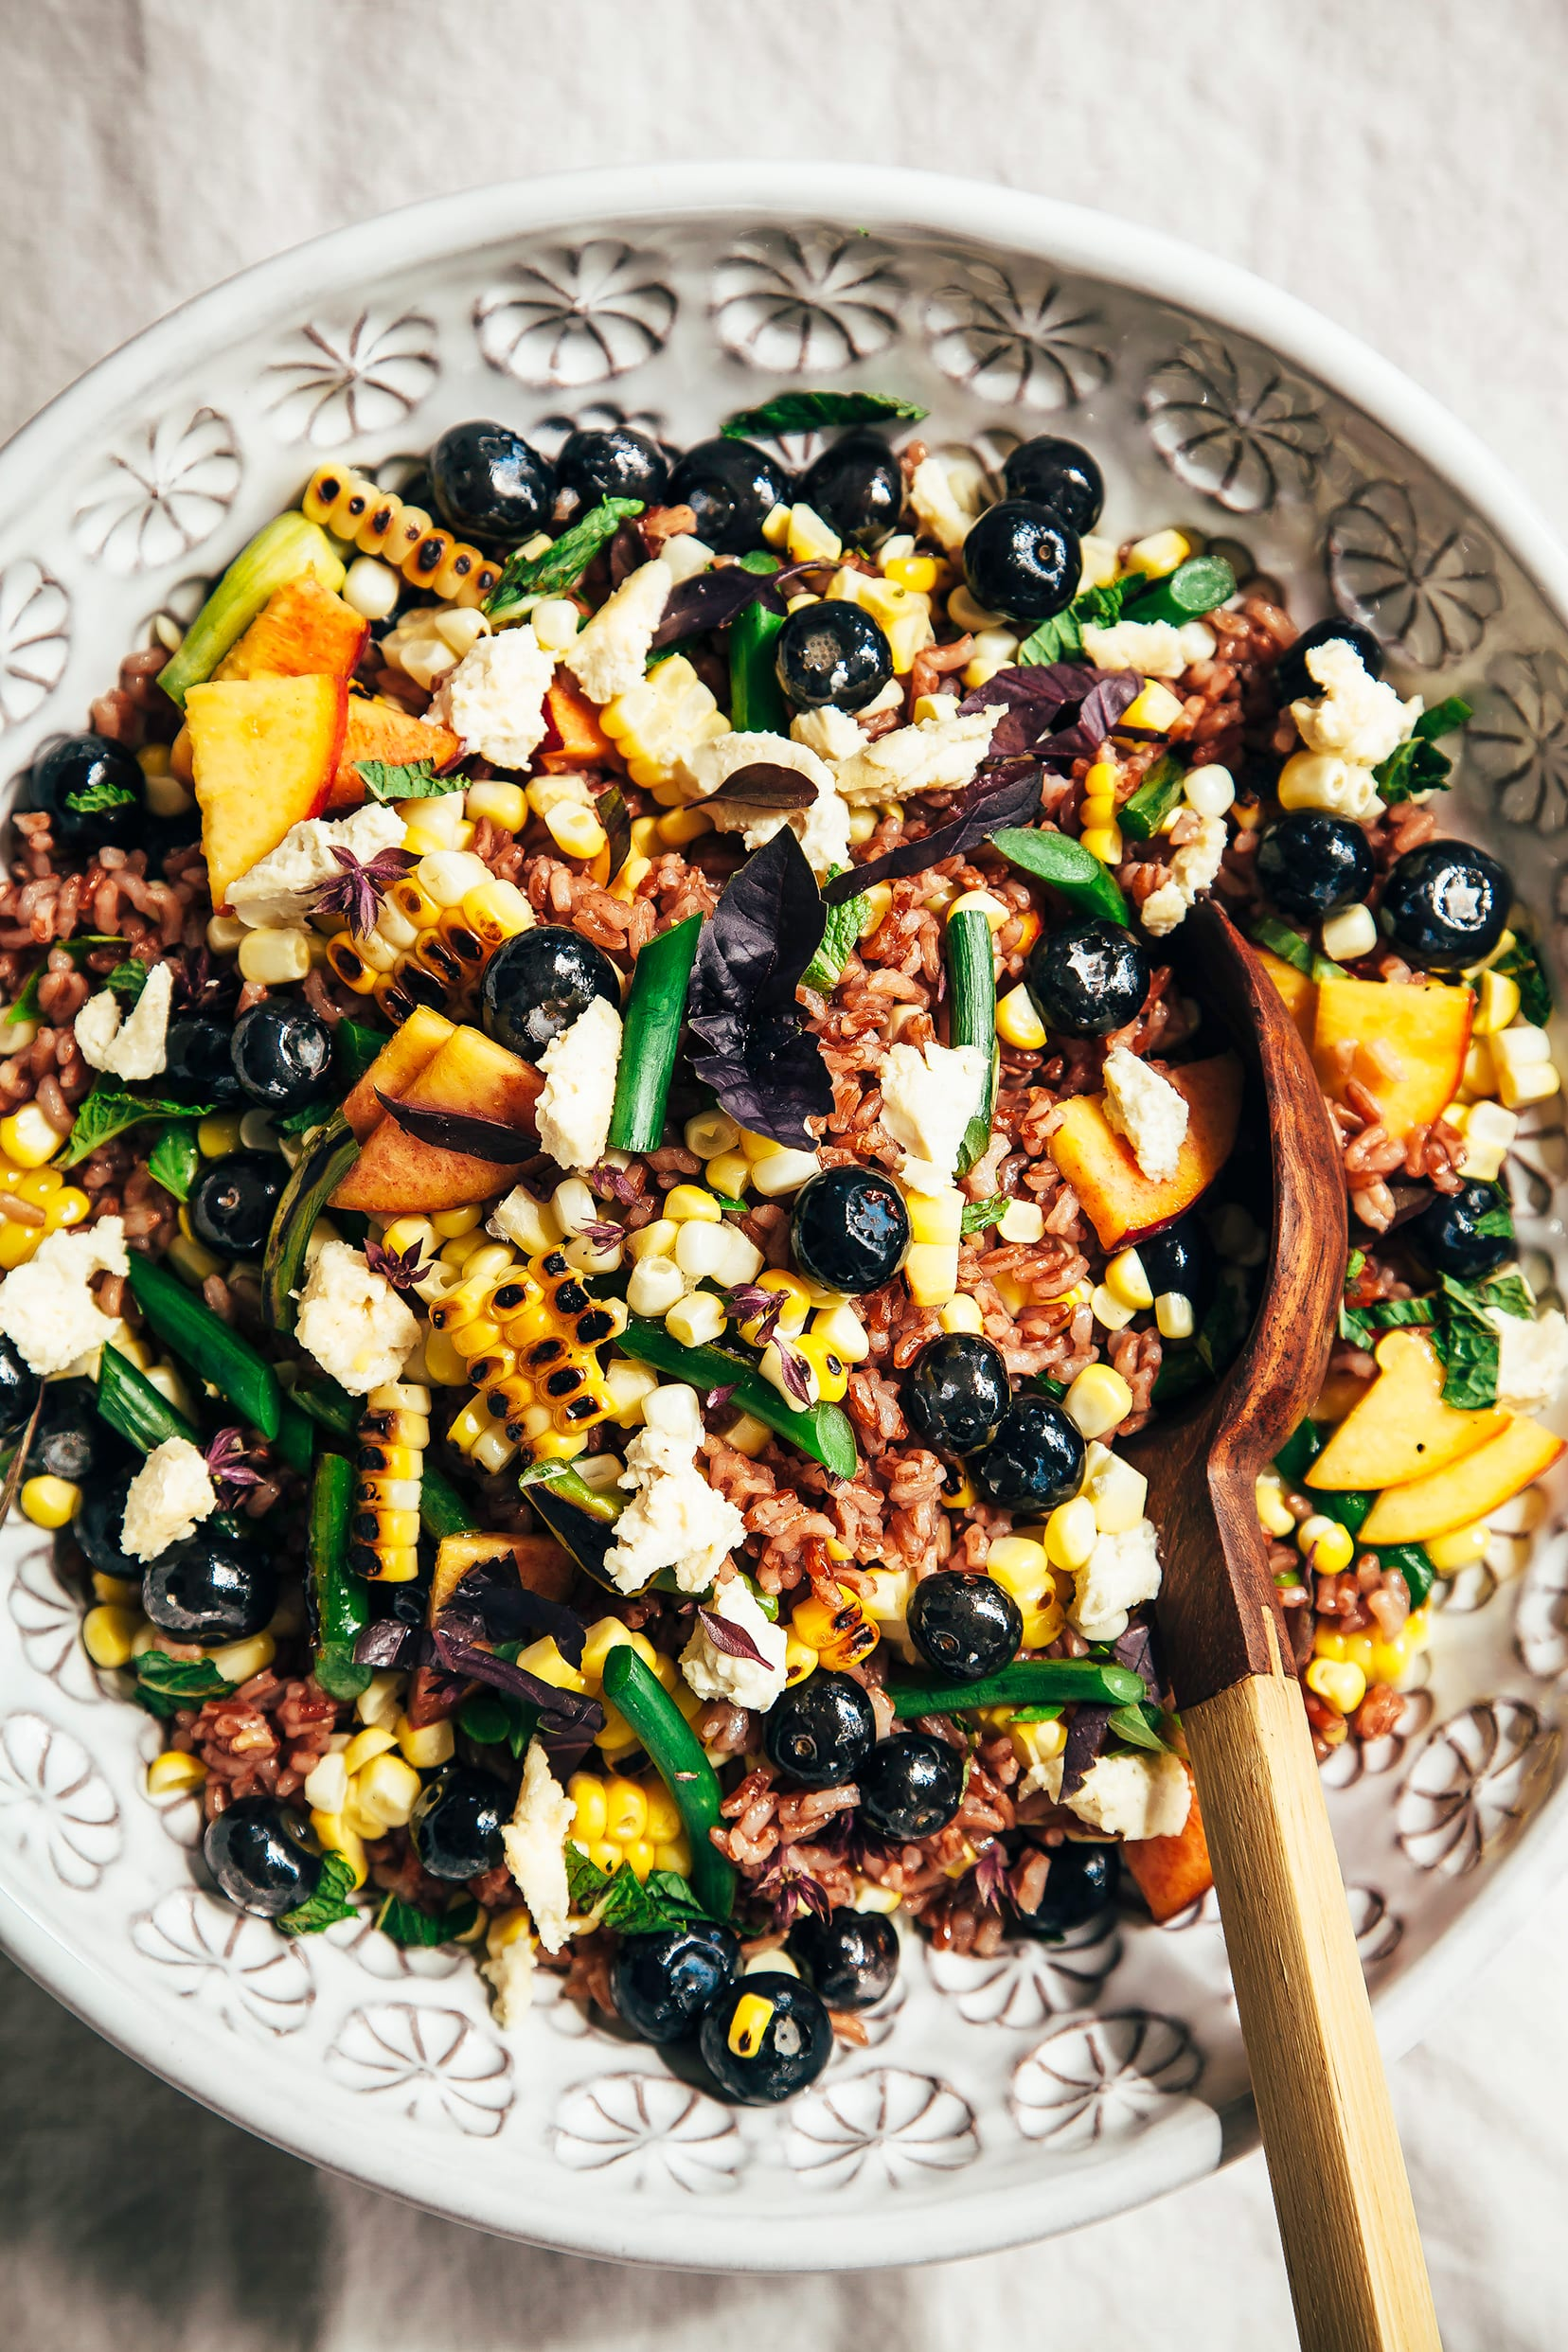 Summer Picnic Salad with Blueberries & Vegan Almond Feta - The First Mess